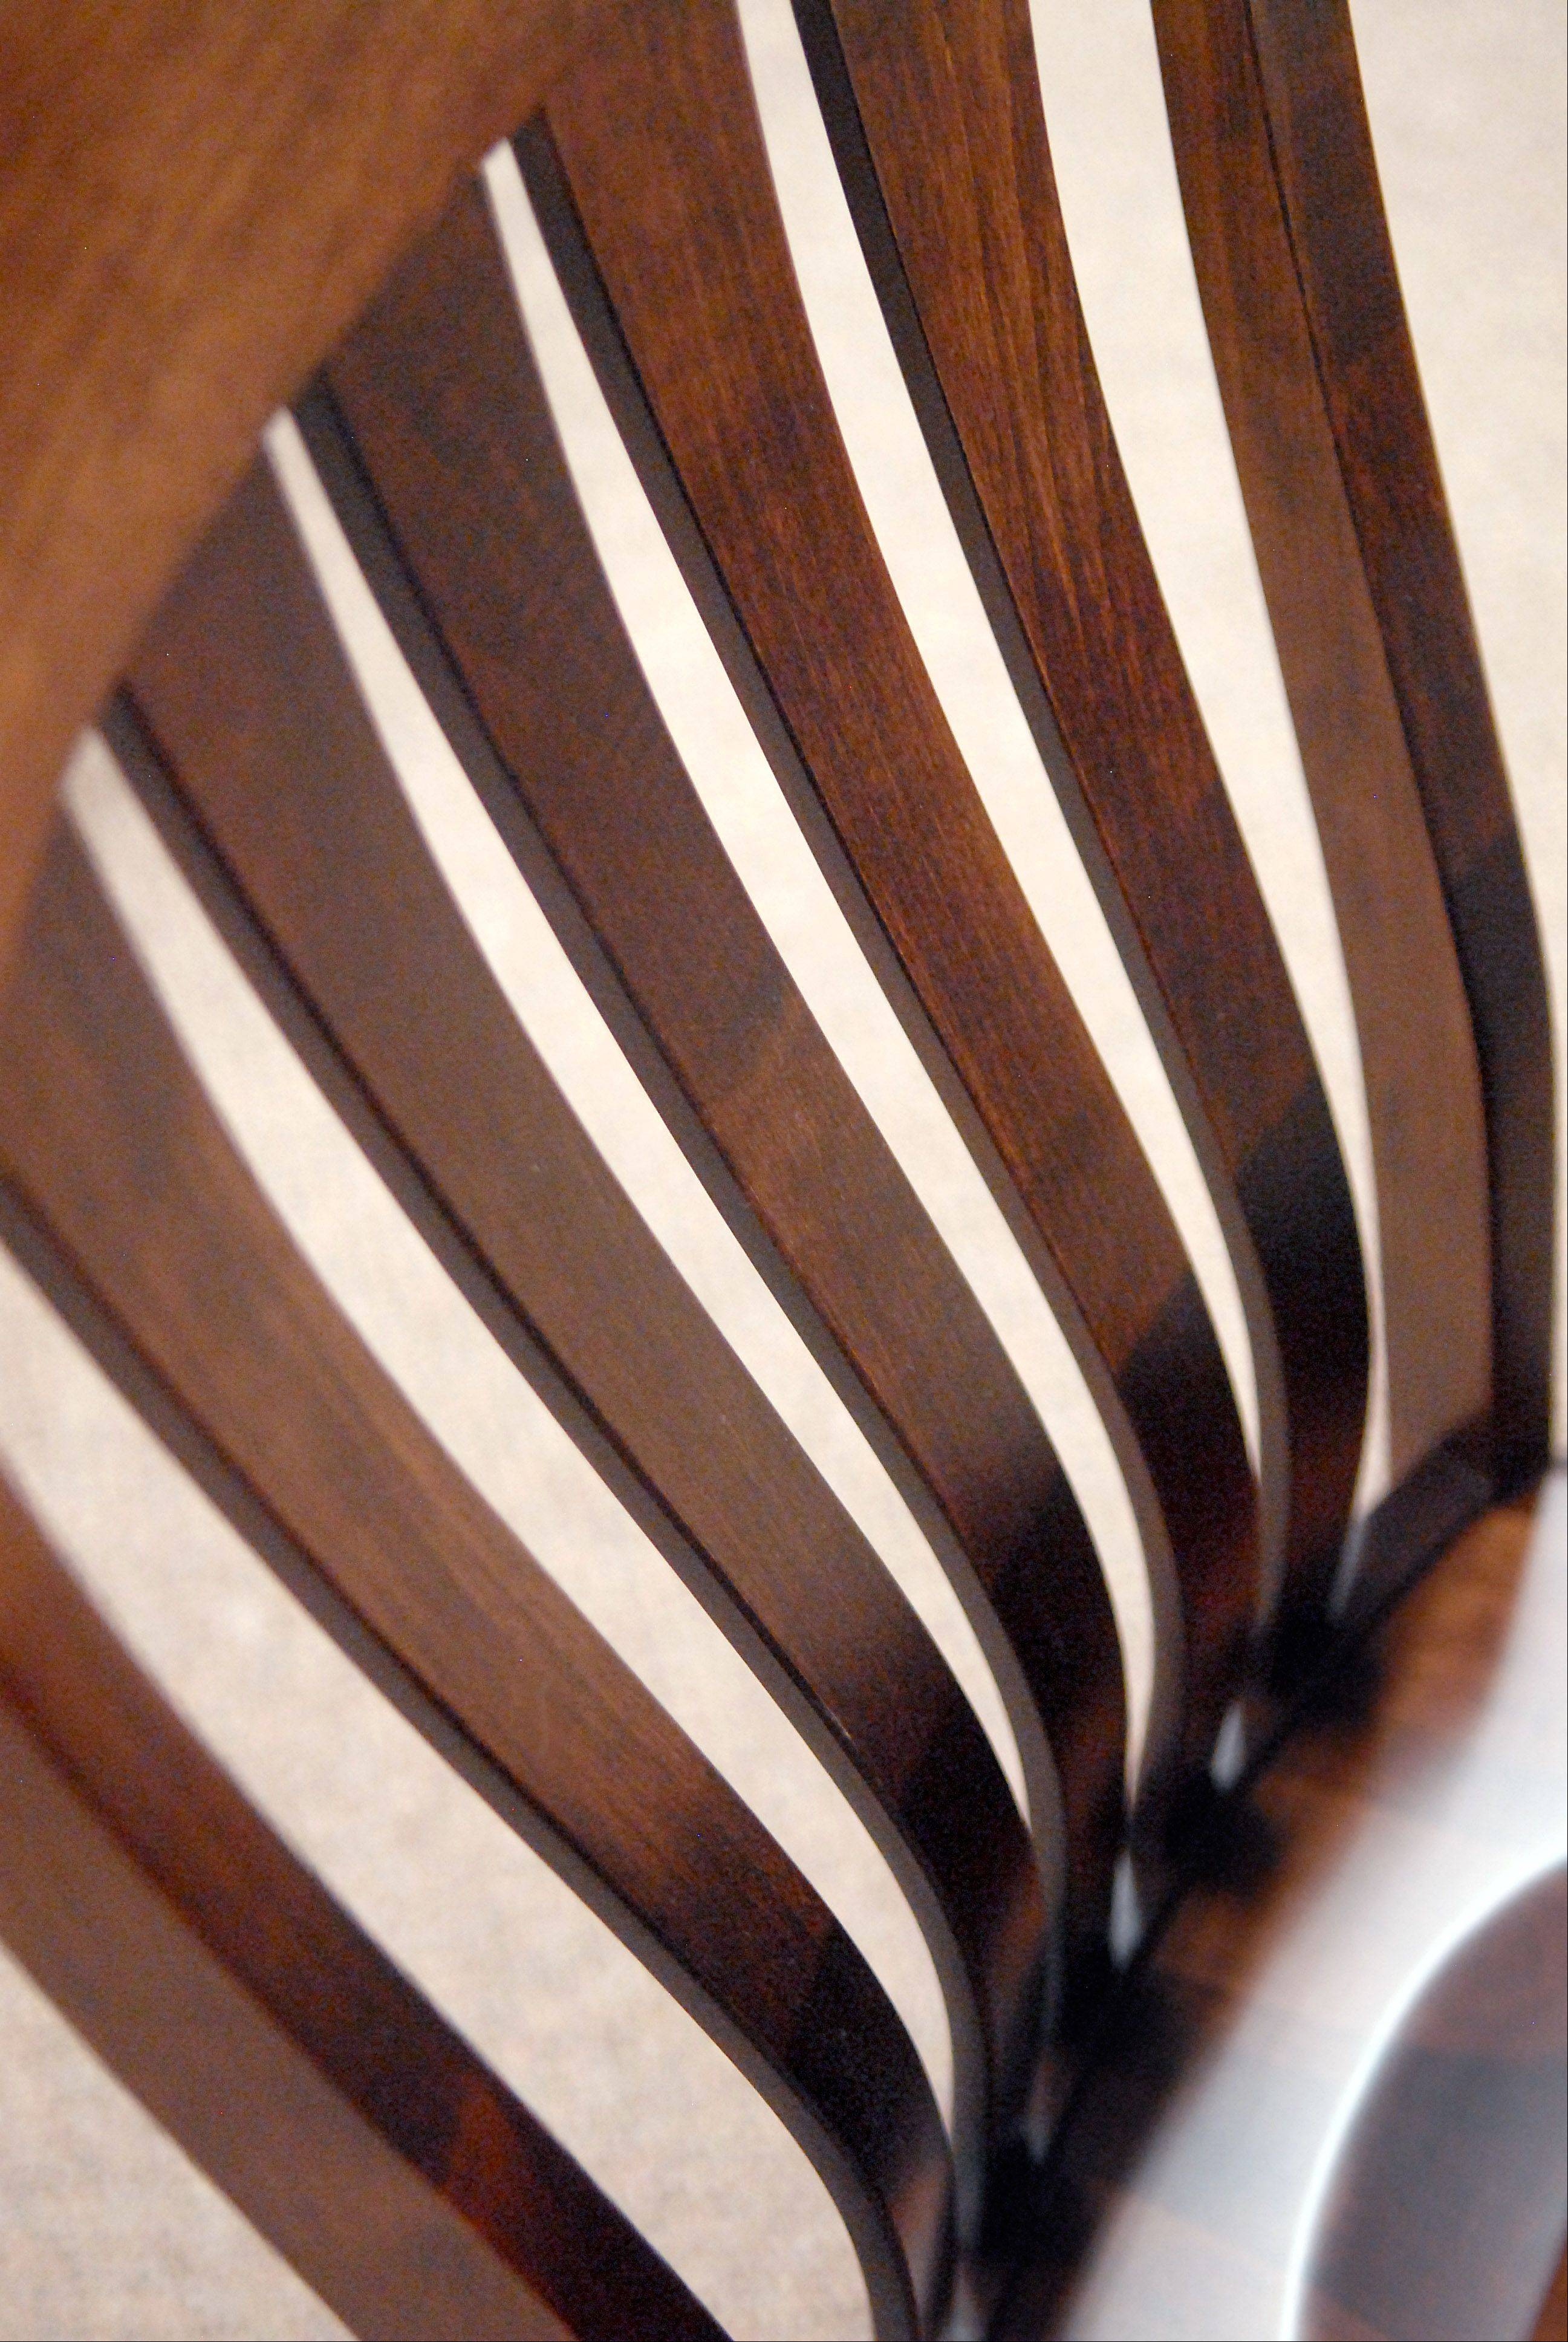 The Curved Lines Of A Solid Wood Dining Room Chair At Burress Amish  Furniture In Elgin